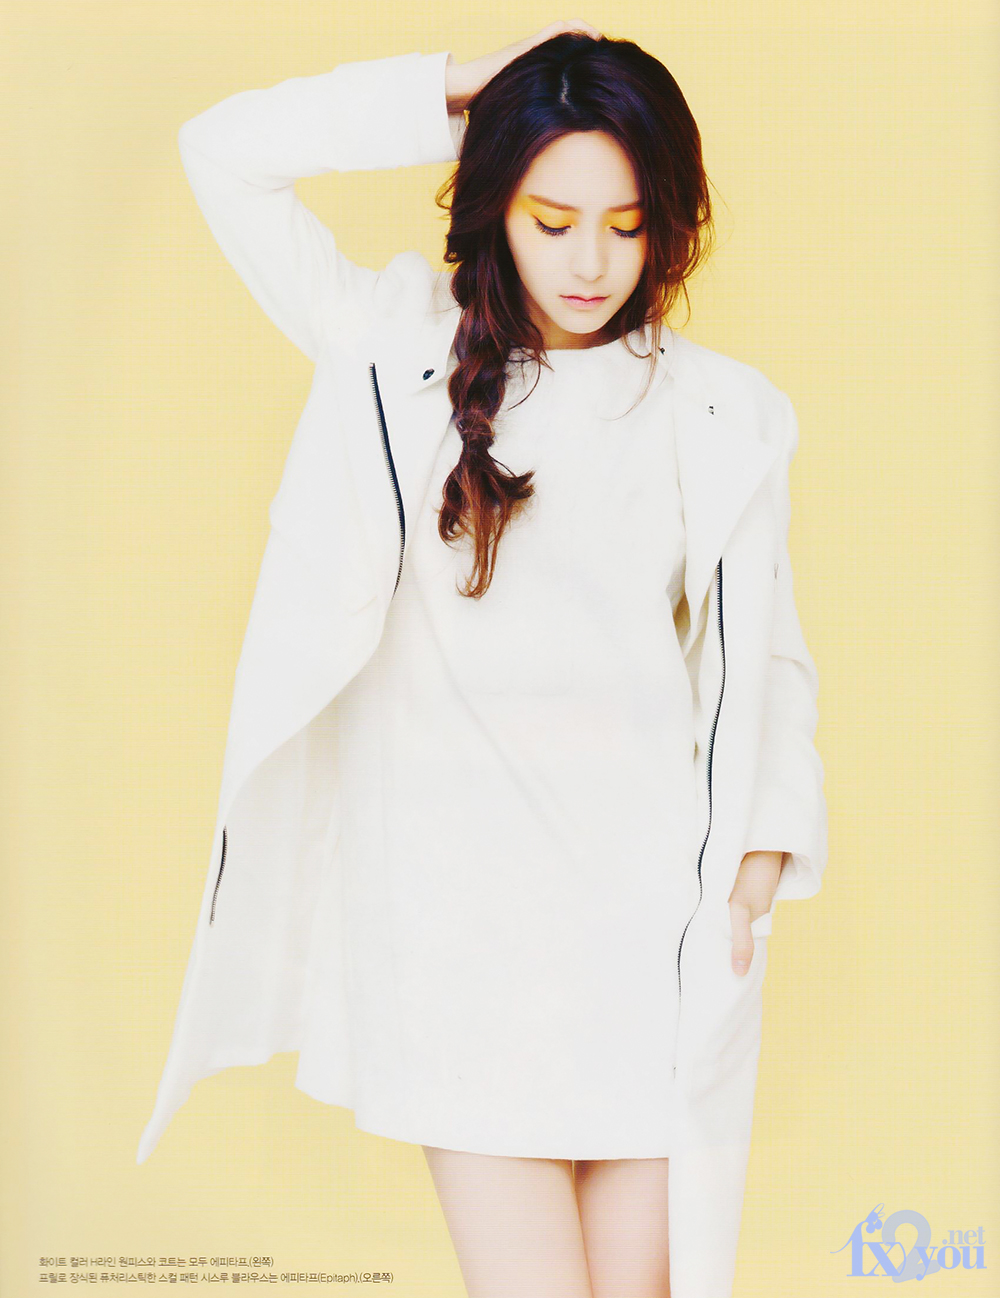 Krystal Jung - Vogue March 2013 | Beautiful Korean Artists F(x) Krystal 2013